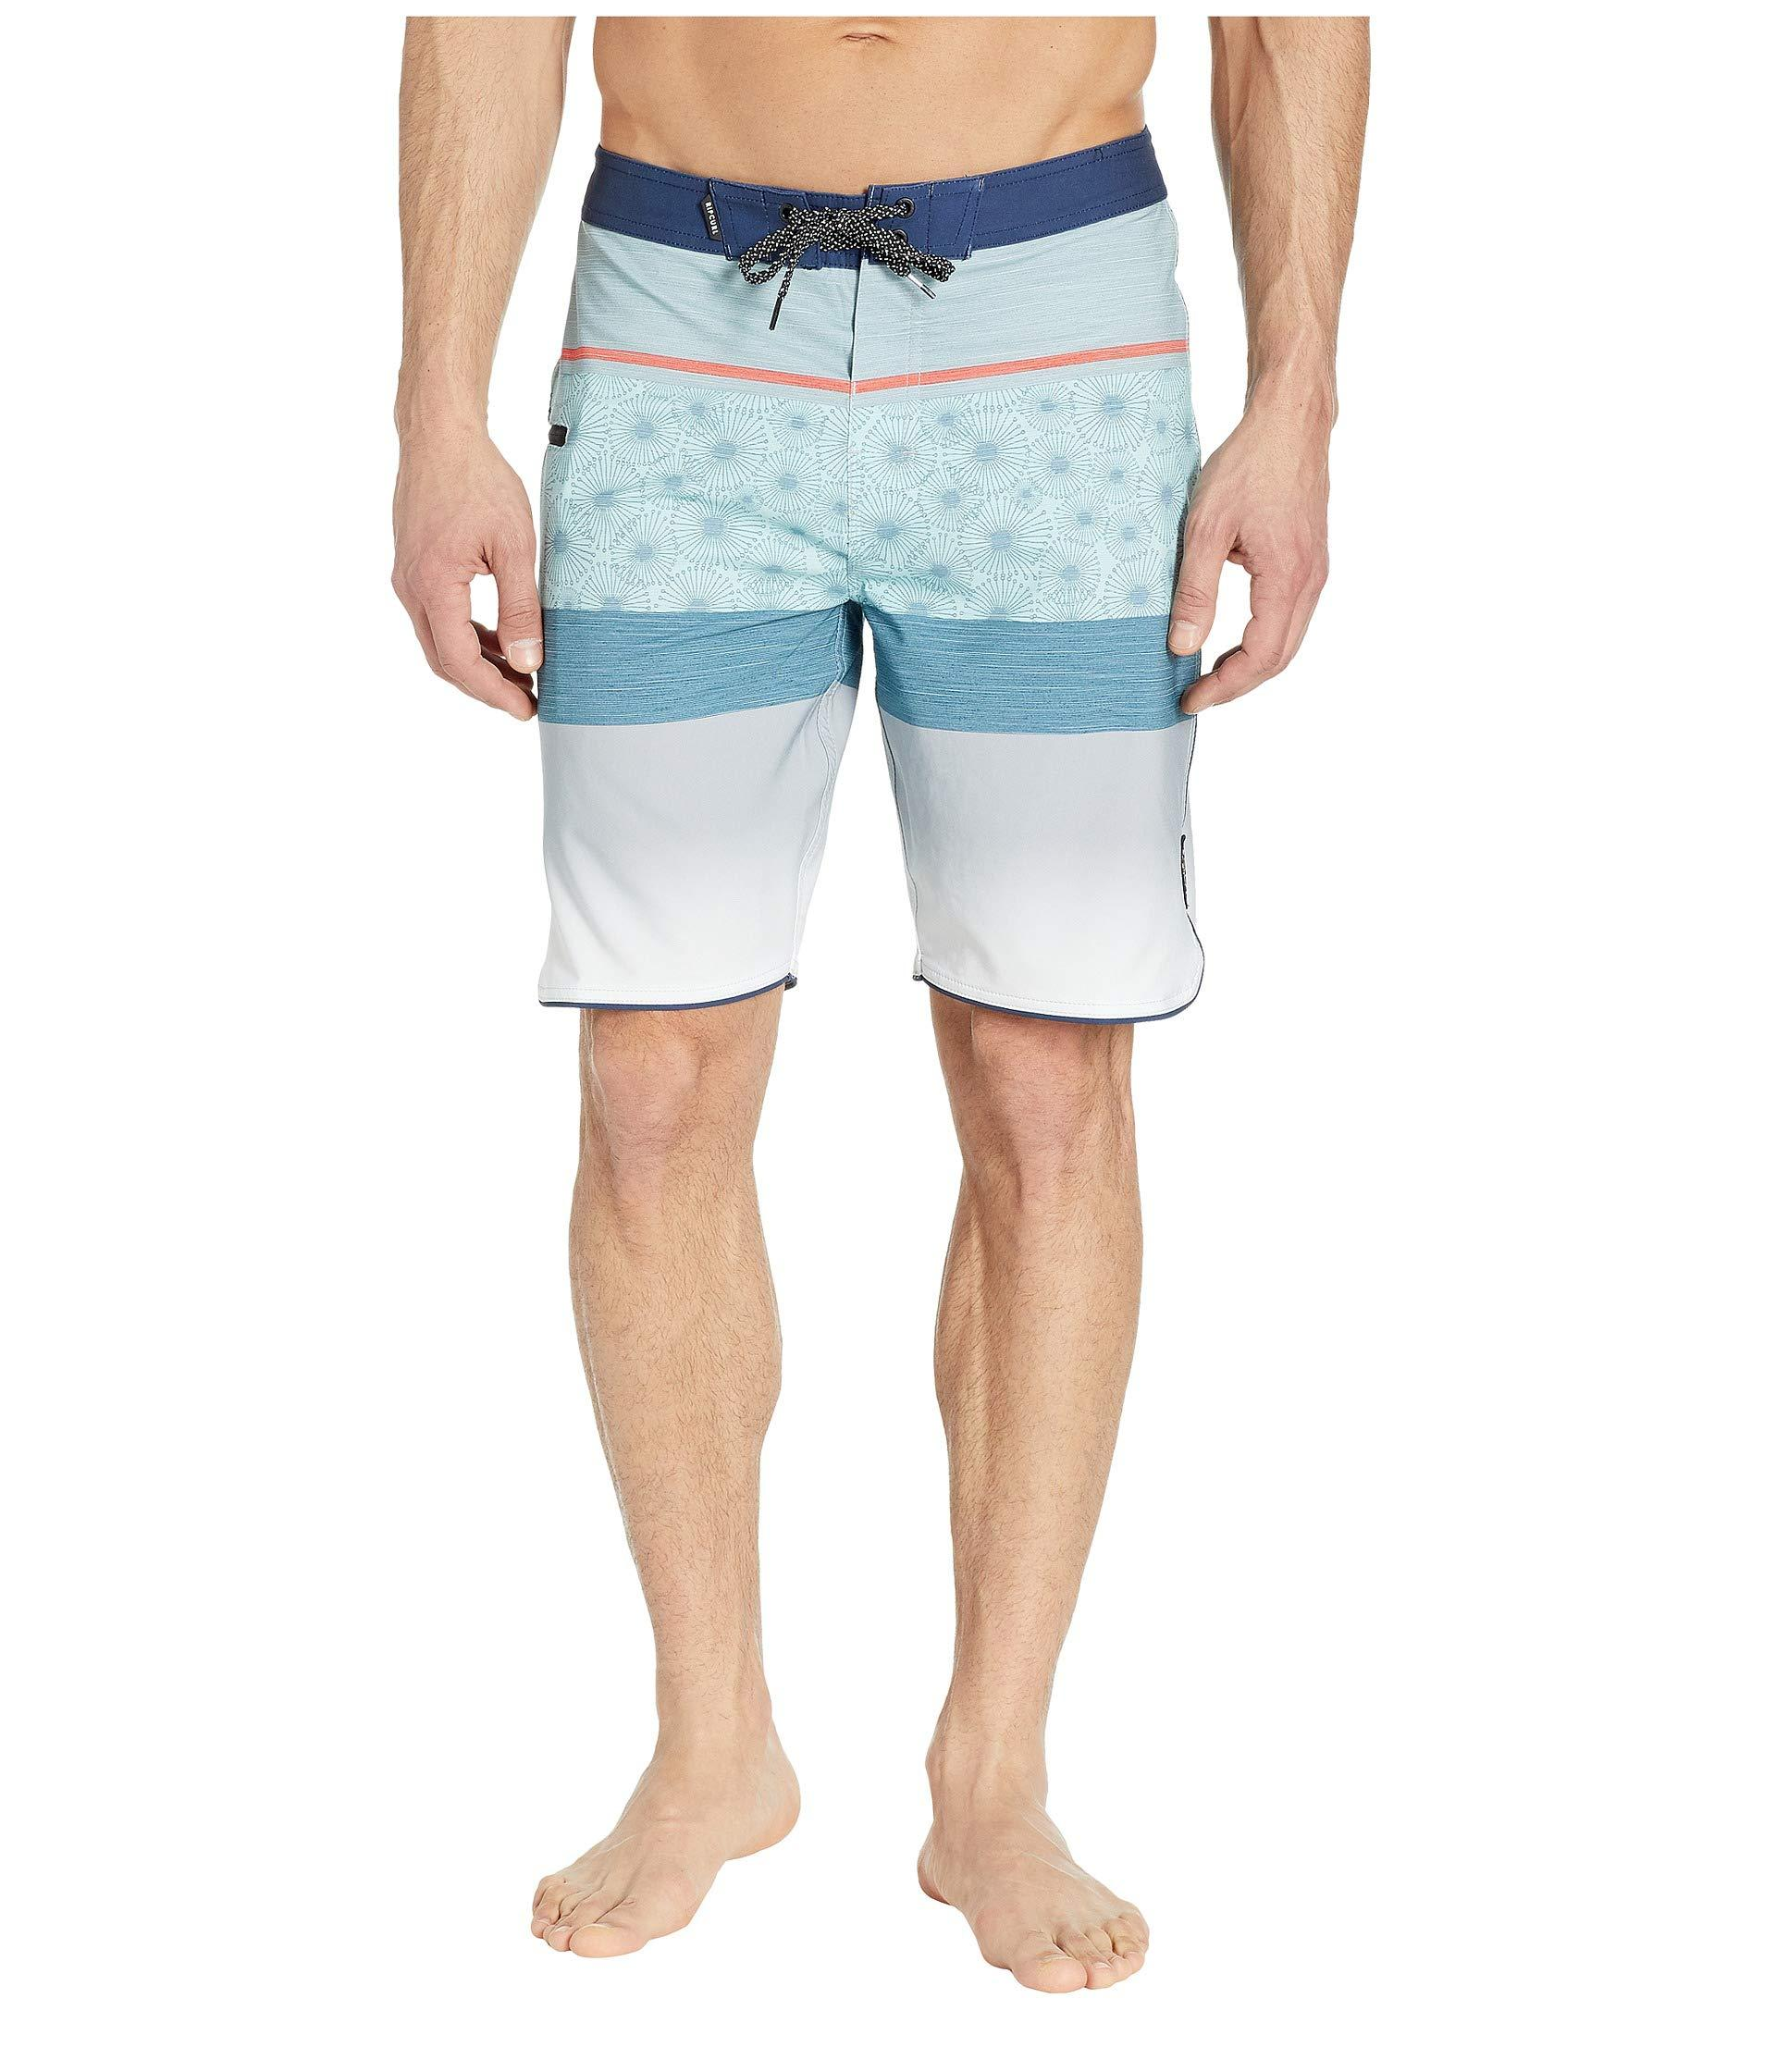 a5e7f7e551 Rip Curl Mirage Visions Boardshorts (navy) Men's Swimwear in Blue ...